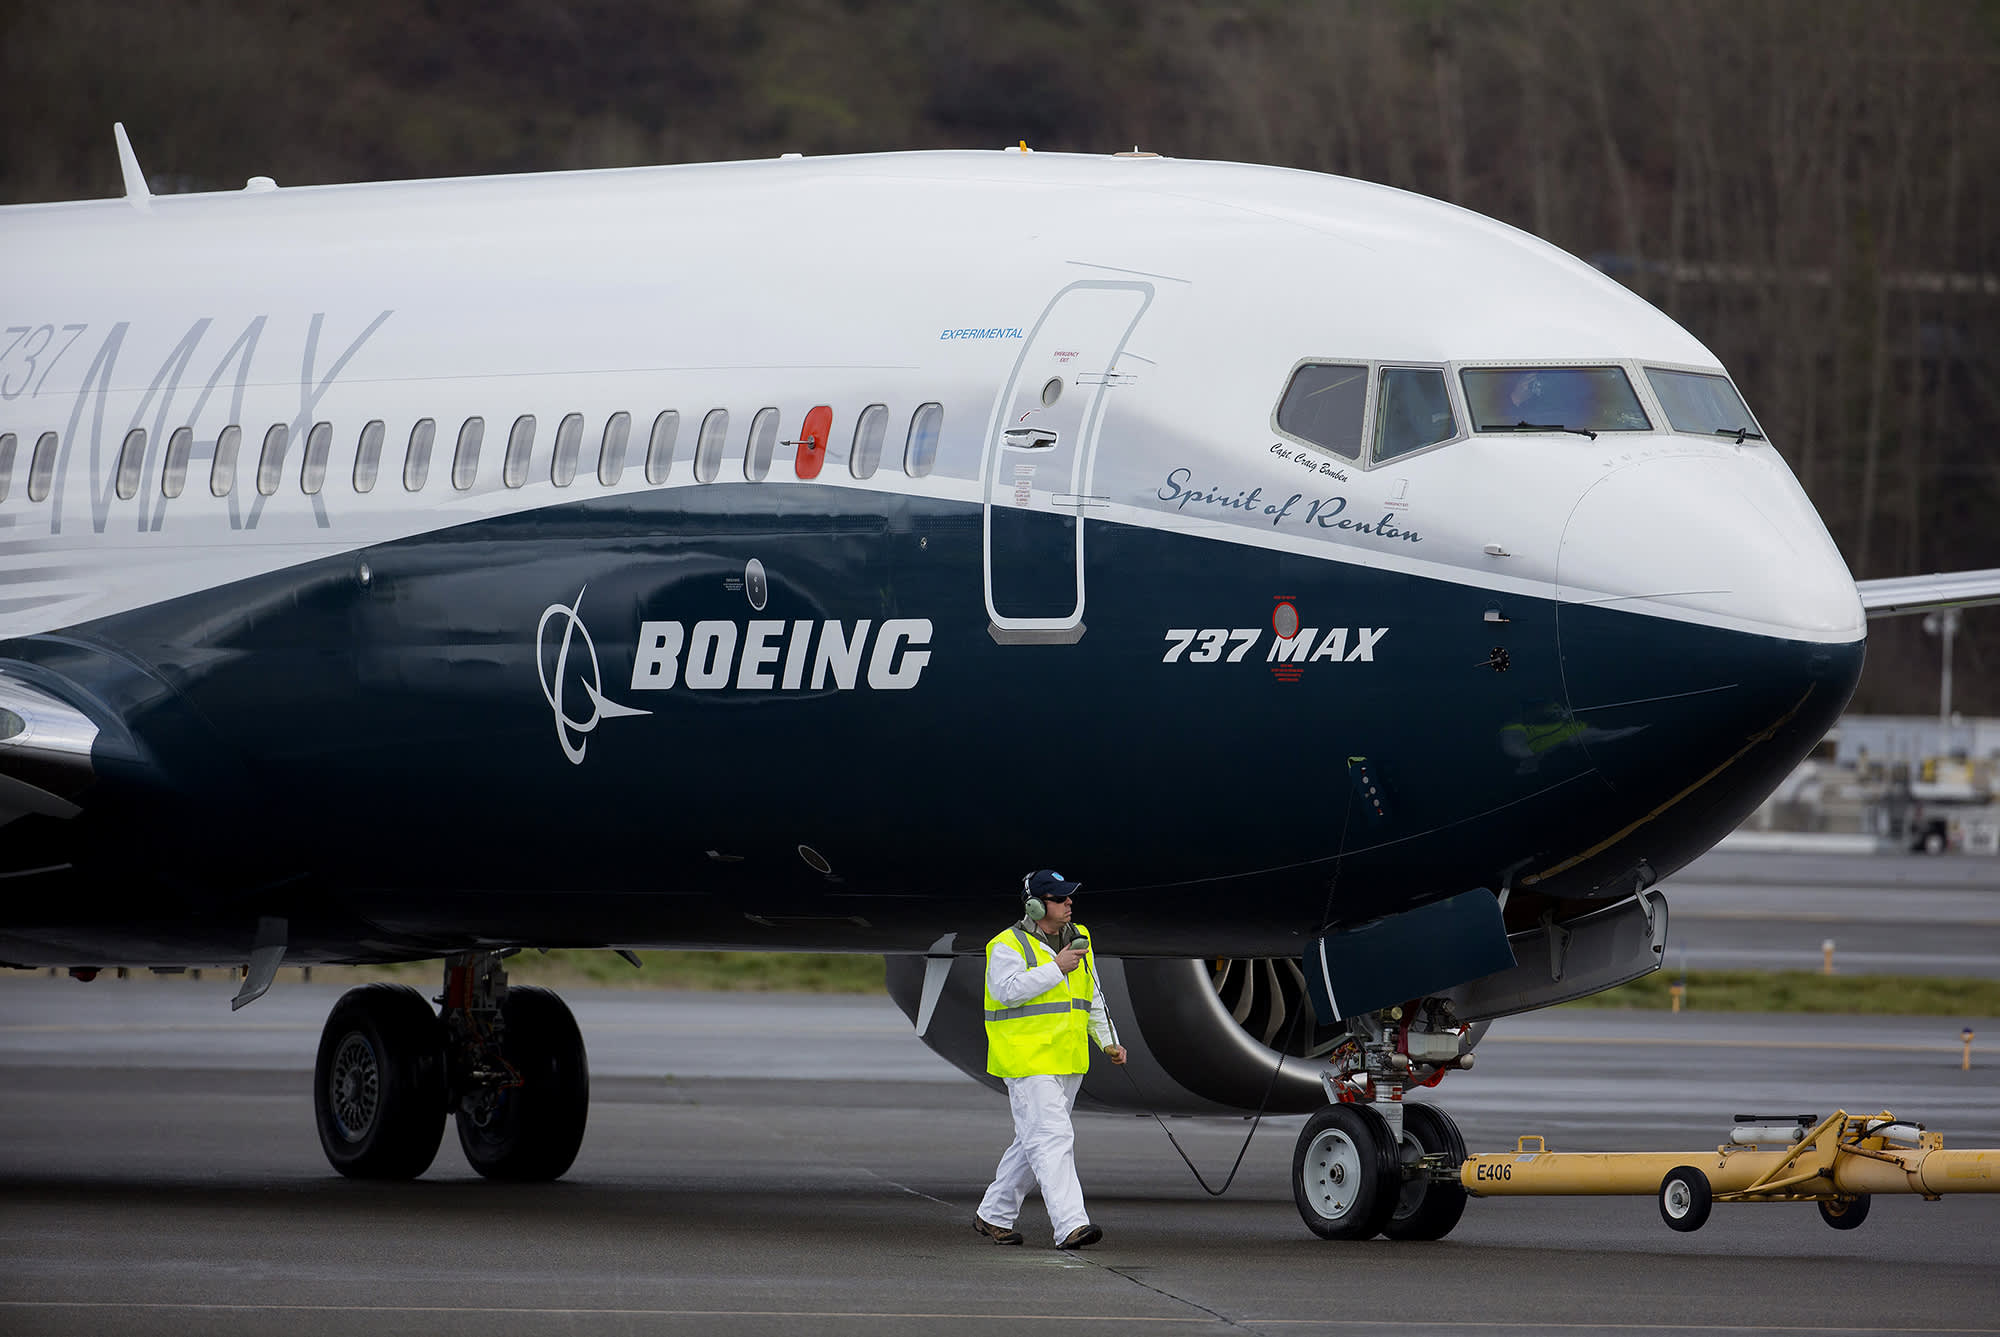 Former Boeing manager says he warned company of problems prior to 737 crashes